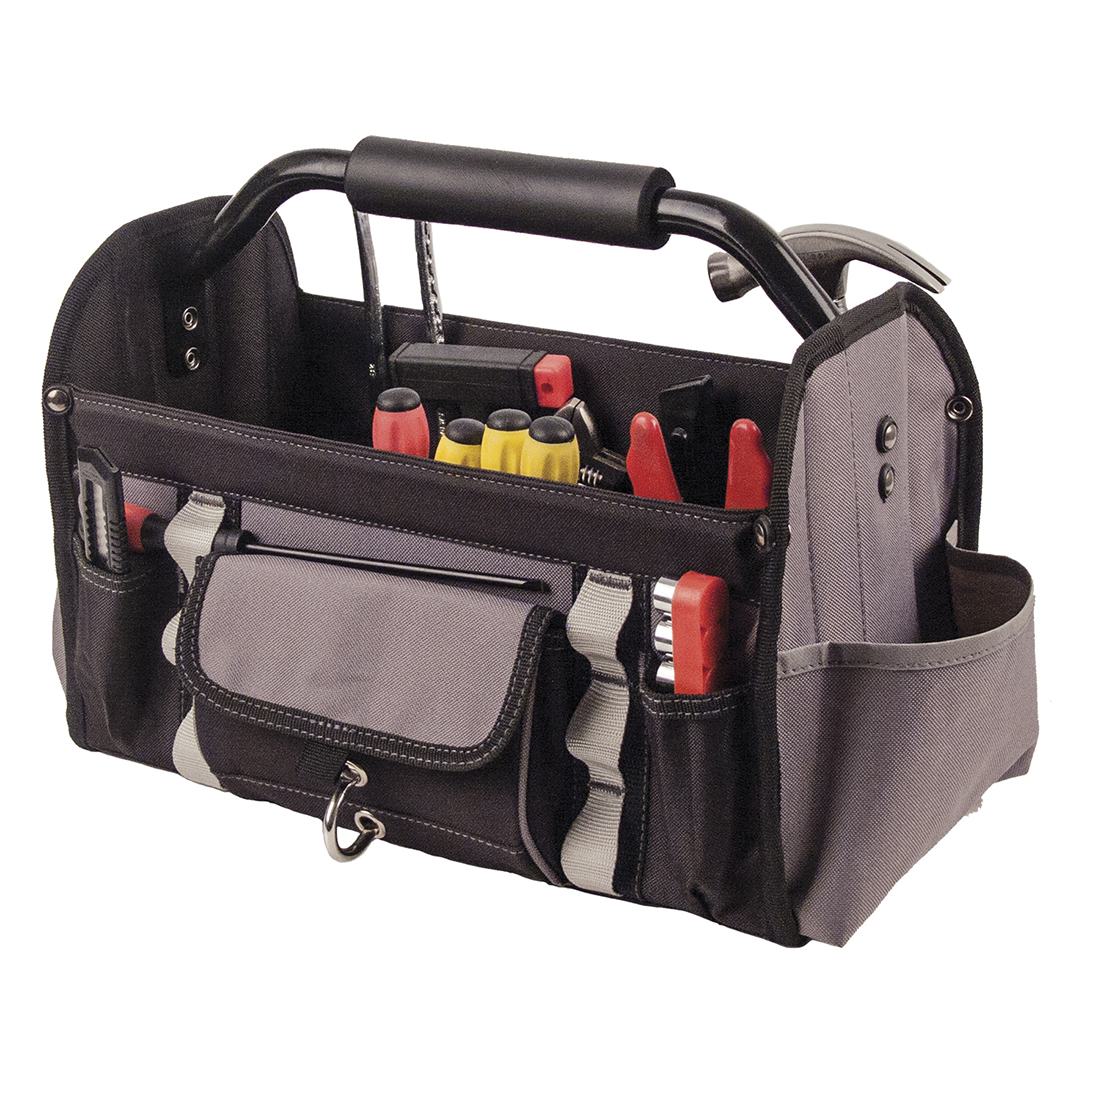 Portwest Open Tool Bag - TB02